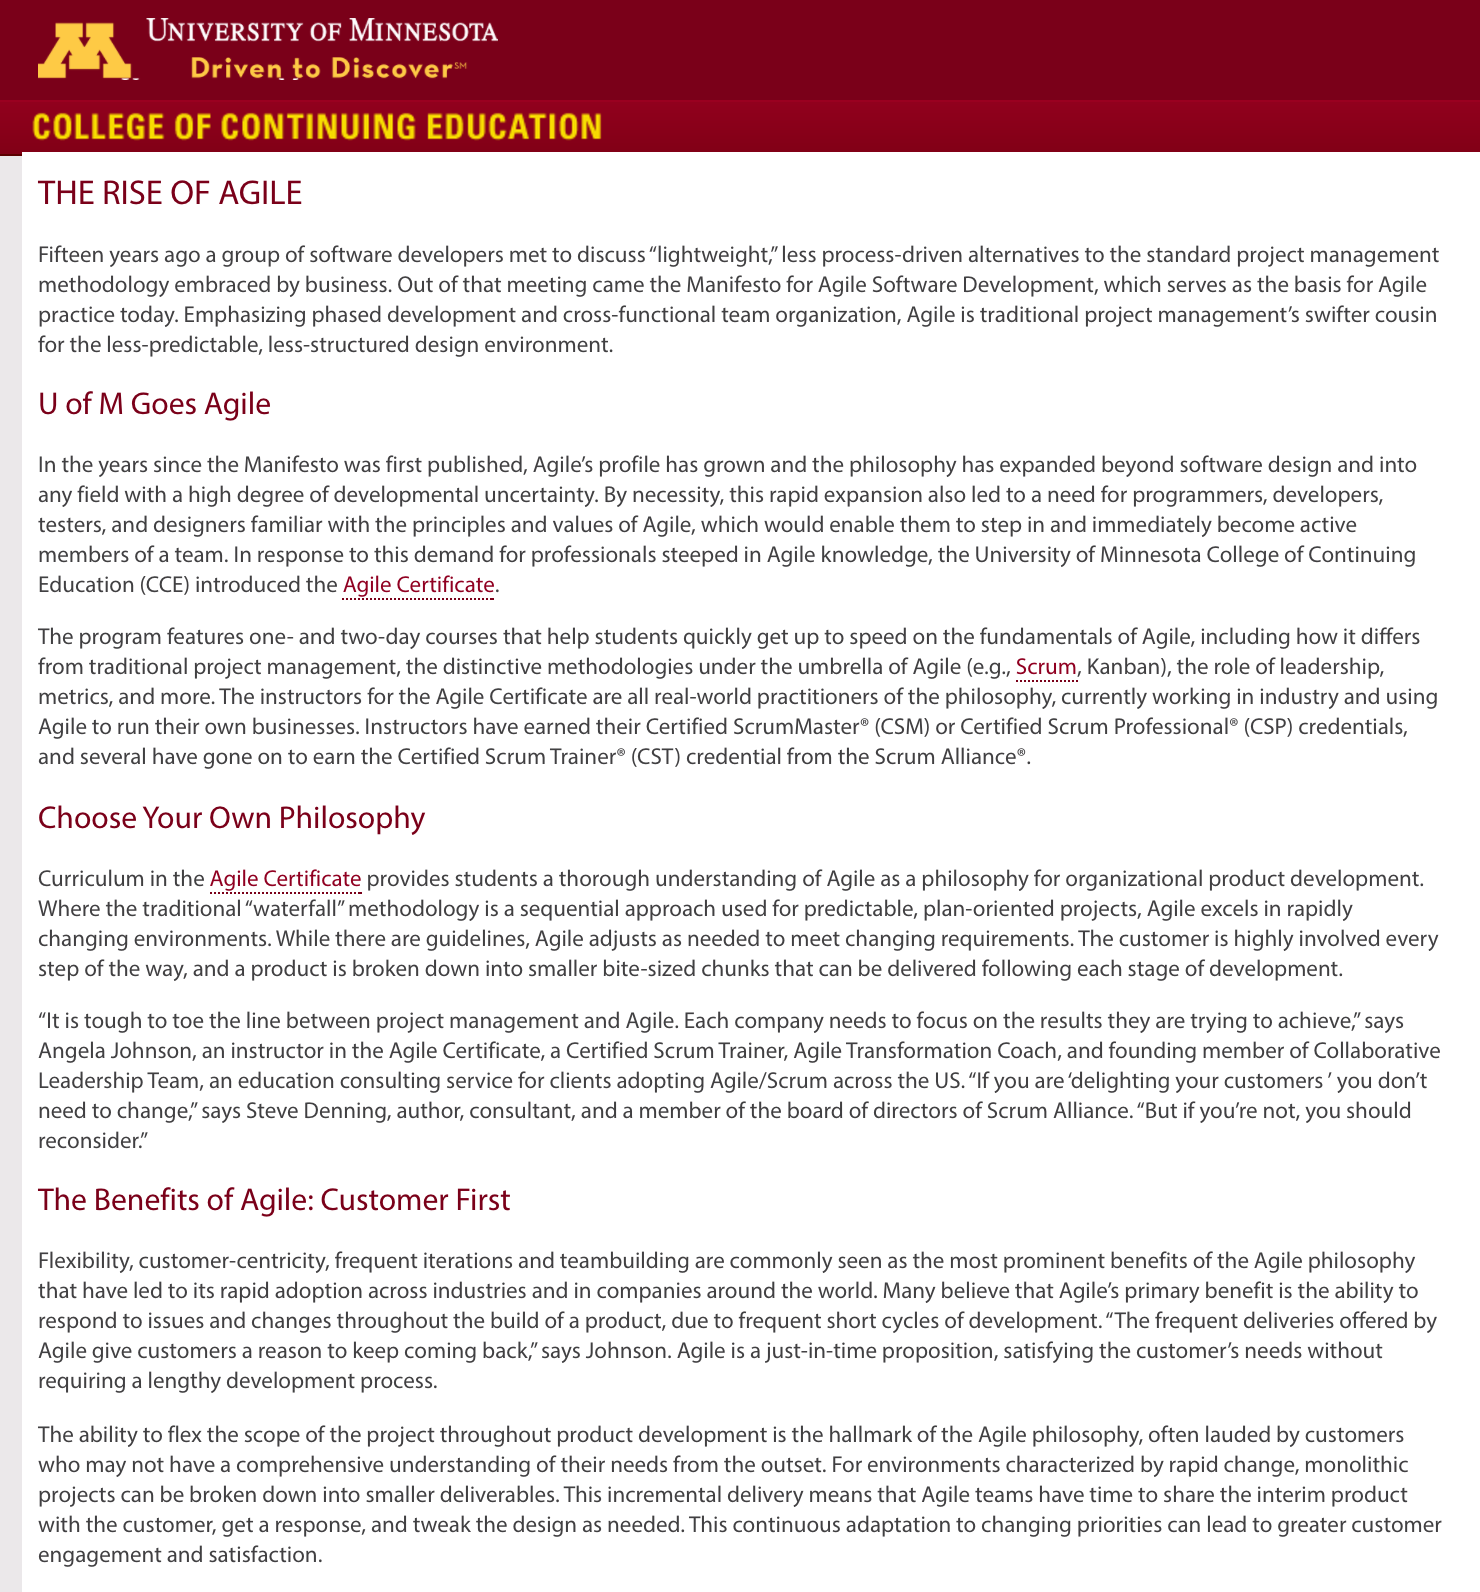 College of Continuing Education - University of Minnesota